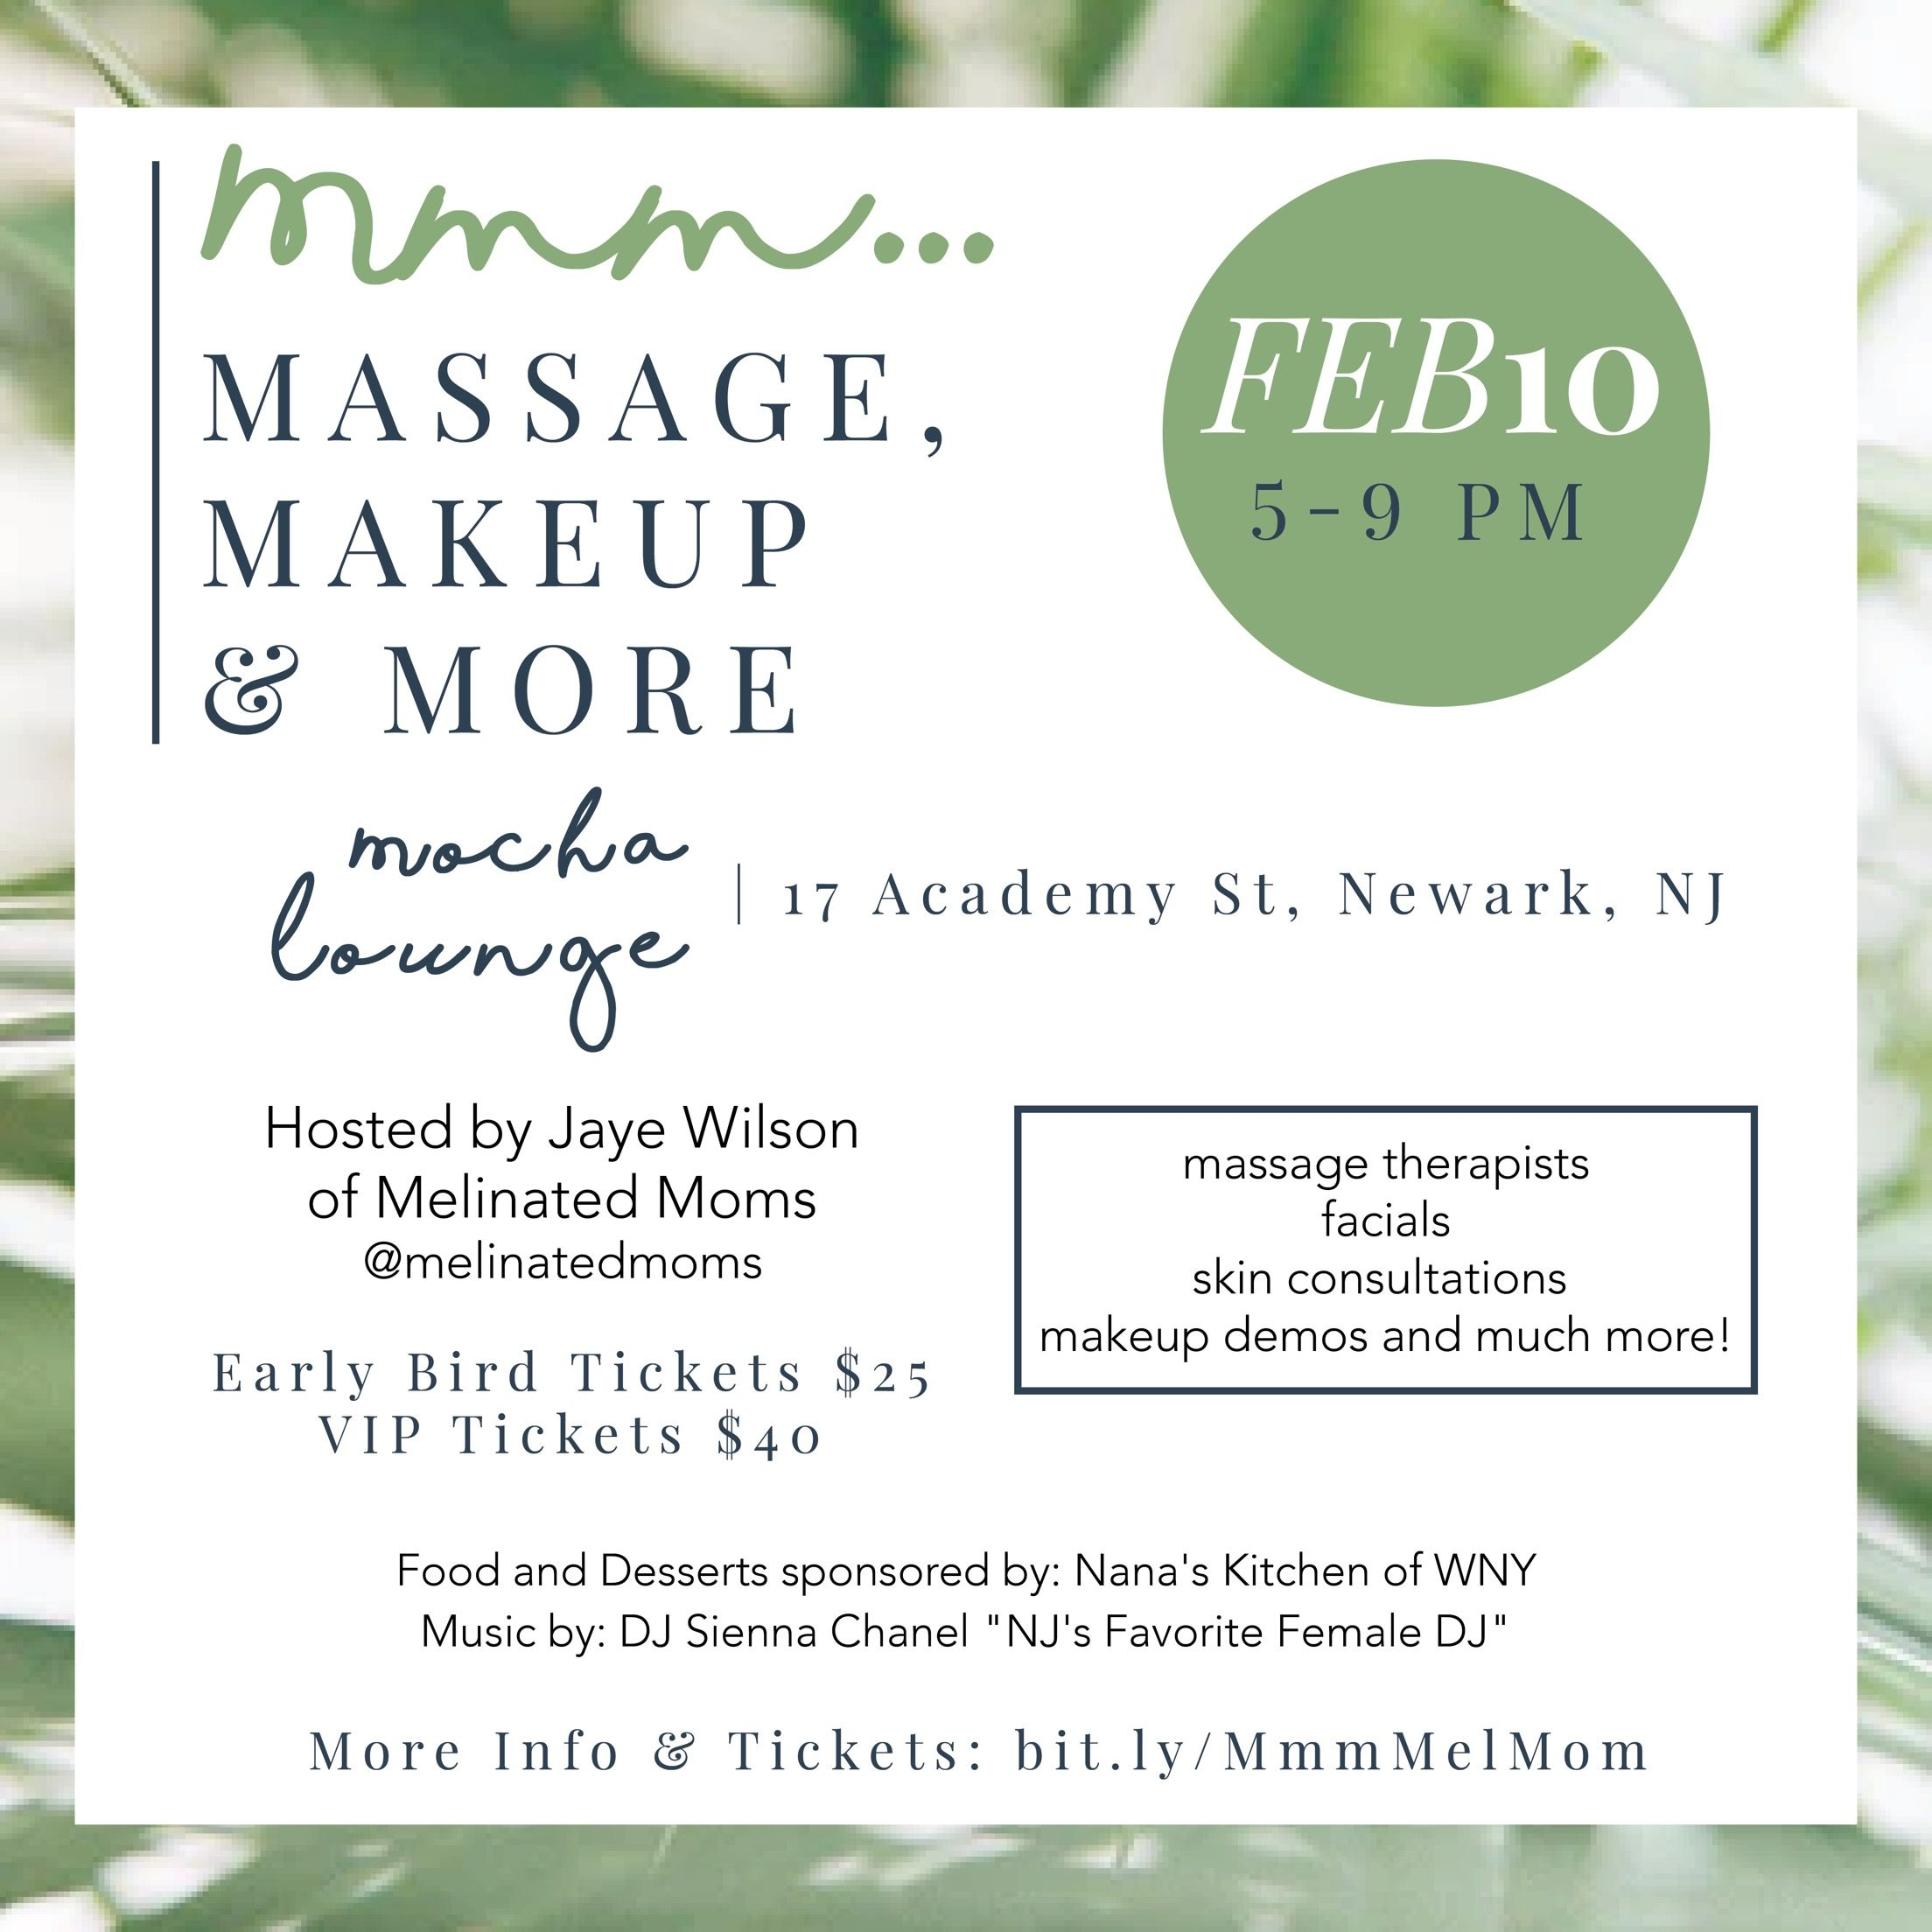 Mmm....Massage Makeup and More February 10, 2018! Get your tickets ...